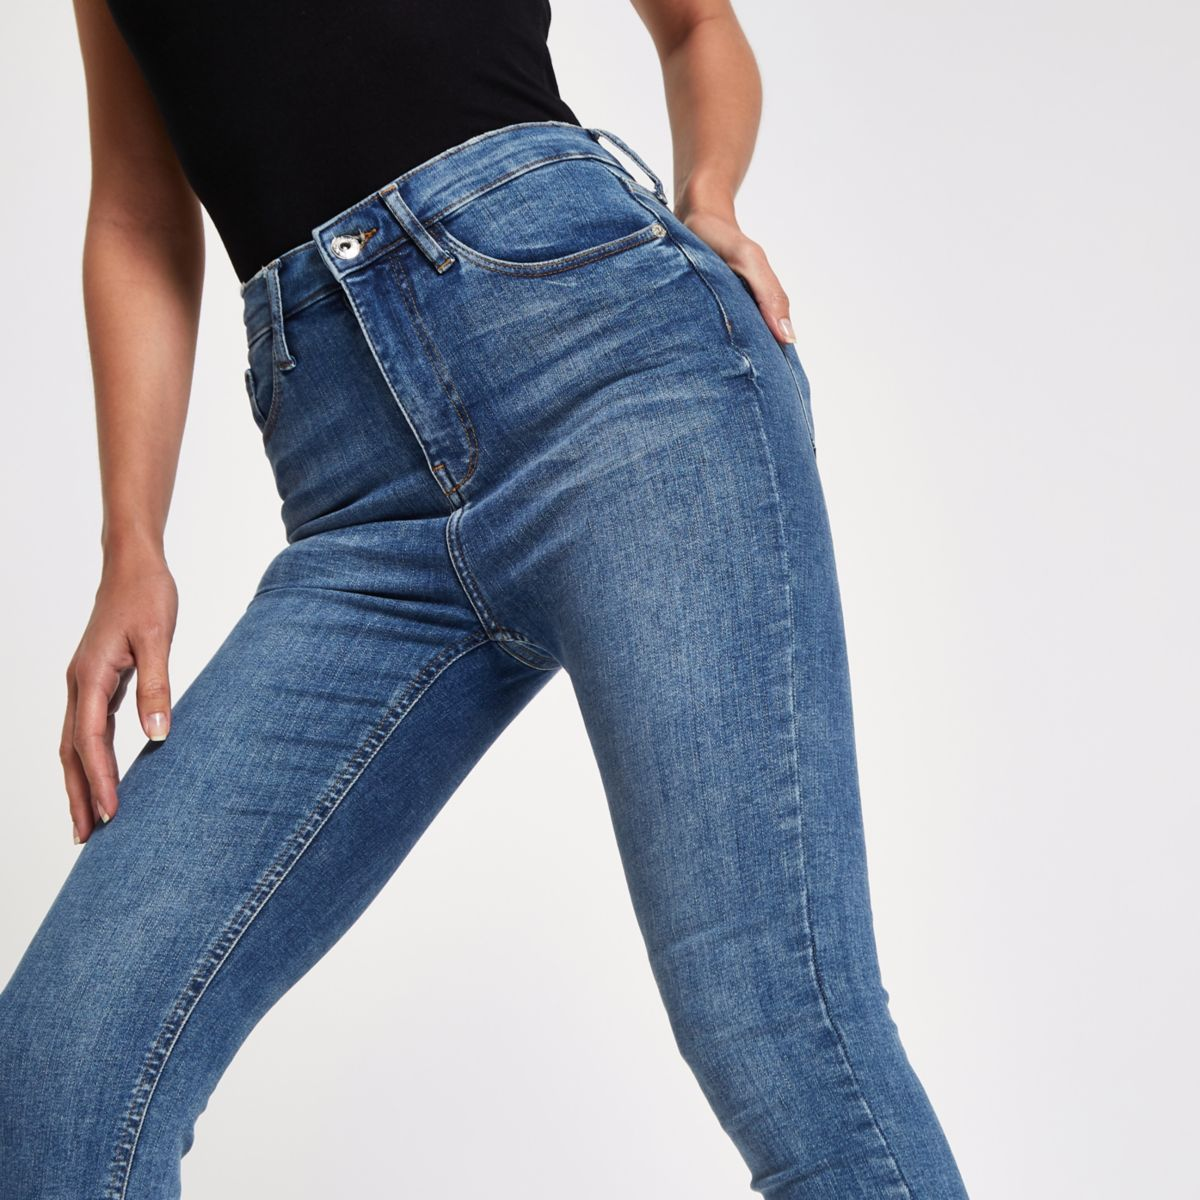 At New York & Company, jeans for women aren't only the perfect fit for your body - they're perfectly proportioned too. Show off your legs with our collection of jeans for tall women. We also have the petite jeans and an array of other sizes.